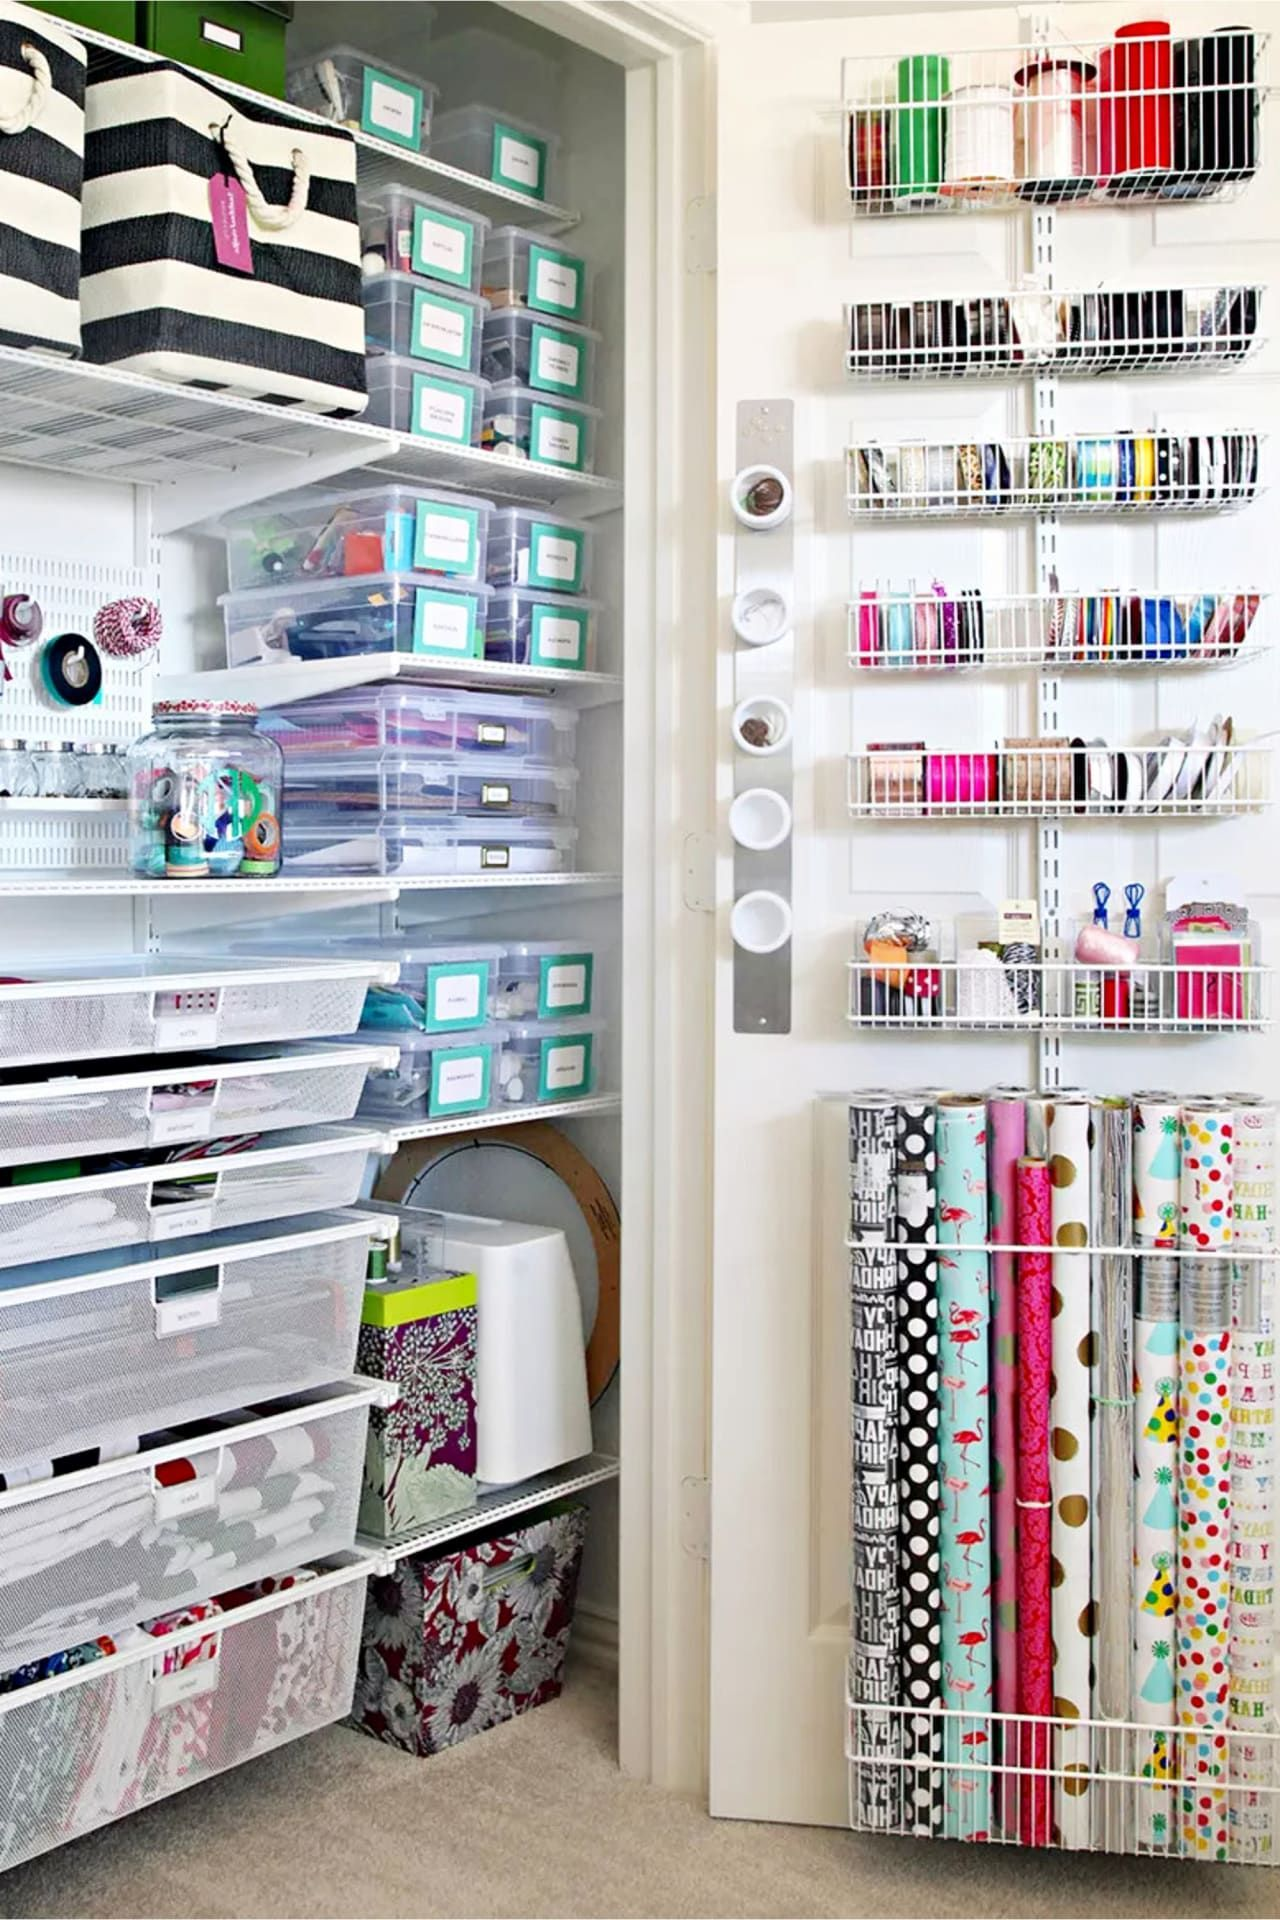 cricut craft room ideas diy projects in 2020 craft room on clever small apartment living organization bathroom ideas unique methods for an organized bathroom id=55633